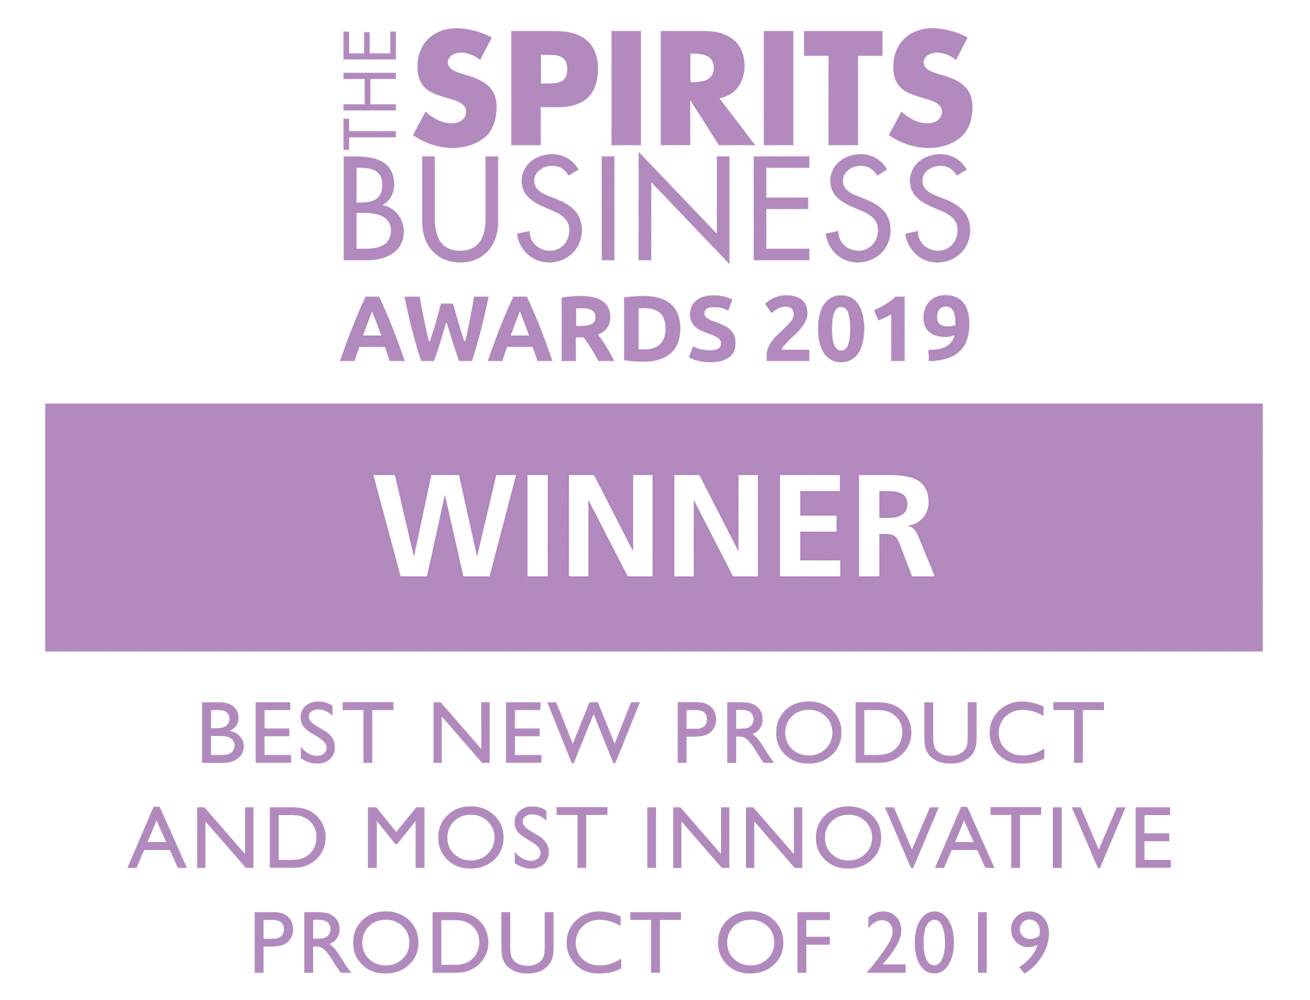 The Spirits Business Awards best new product and most innovative product 2019